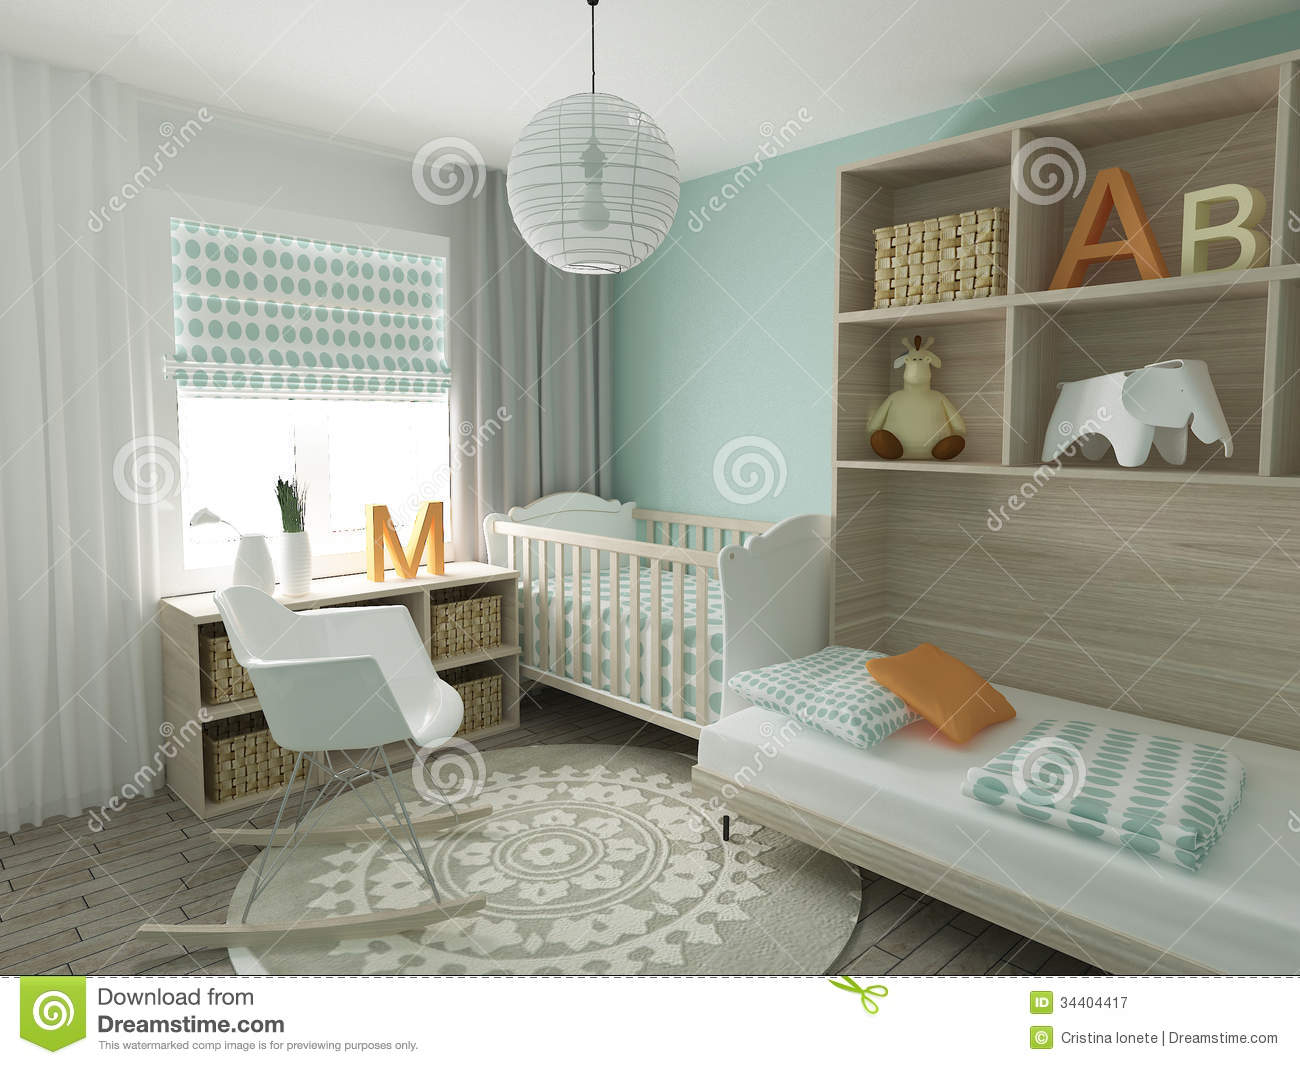 Nursery interior royalty free stock photography image for Master bedroom with attached nursery